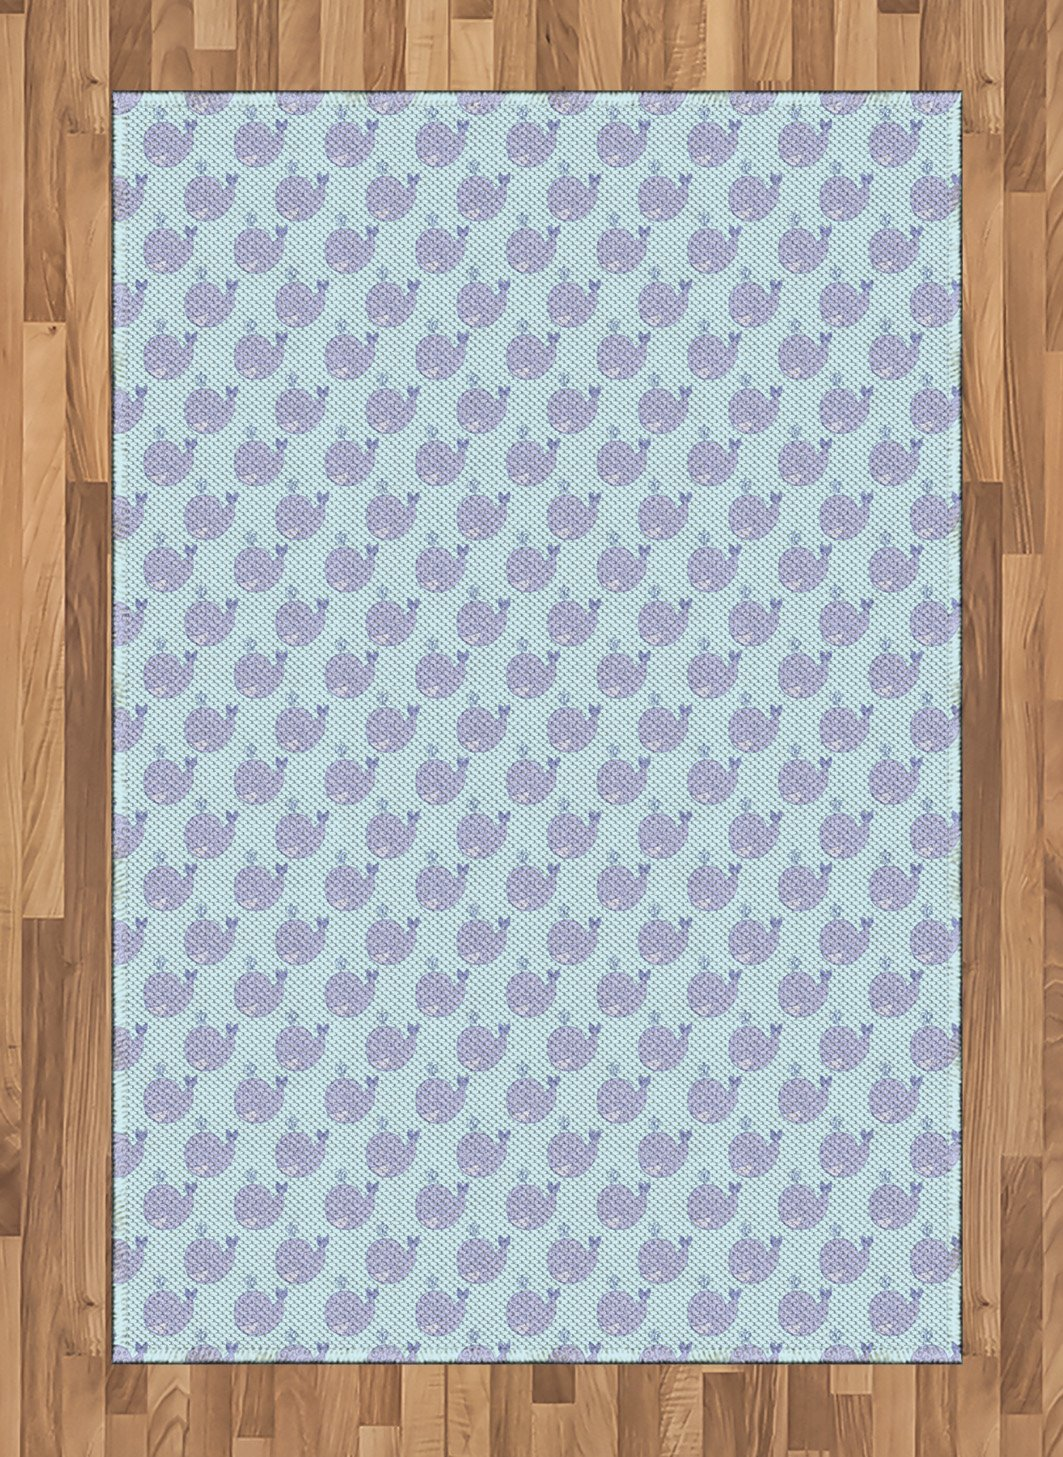 Ambesonne Whale Area Rug, Cartoon Animal with Smile and Swirled Design Inhabitants of The Deep Ocean Theme, Flat Woven Accent Rug for Living Room Bedroom Dining Room, 4 X 5.7 FT, Muave Baby Blue